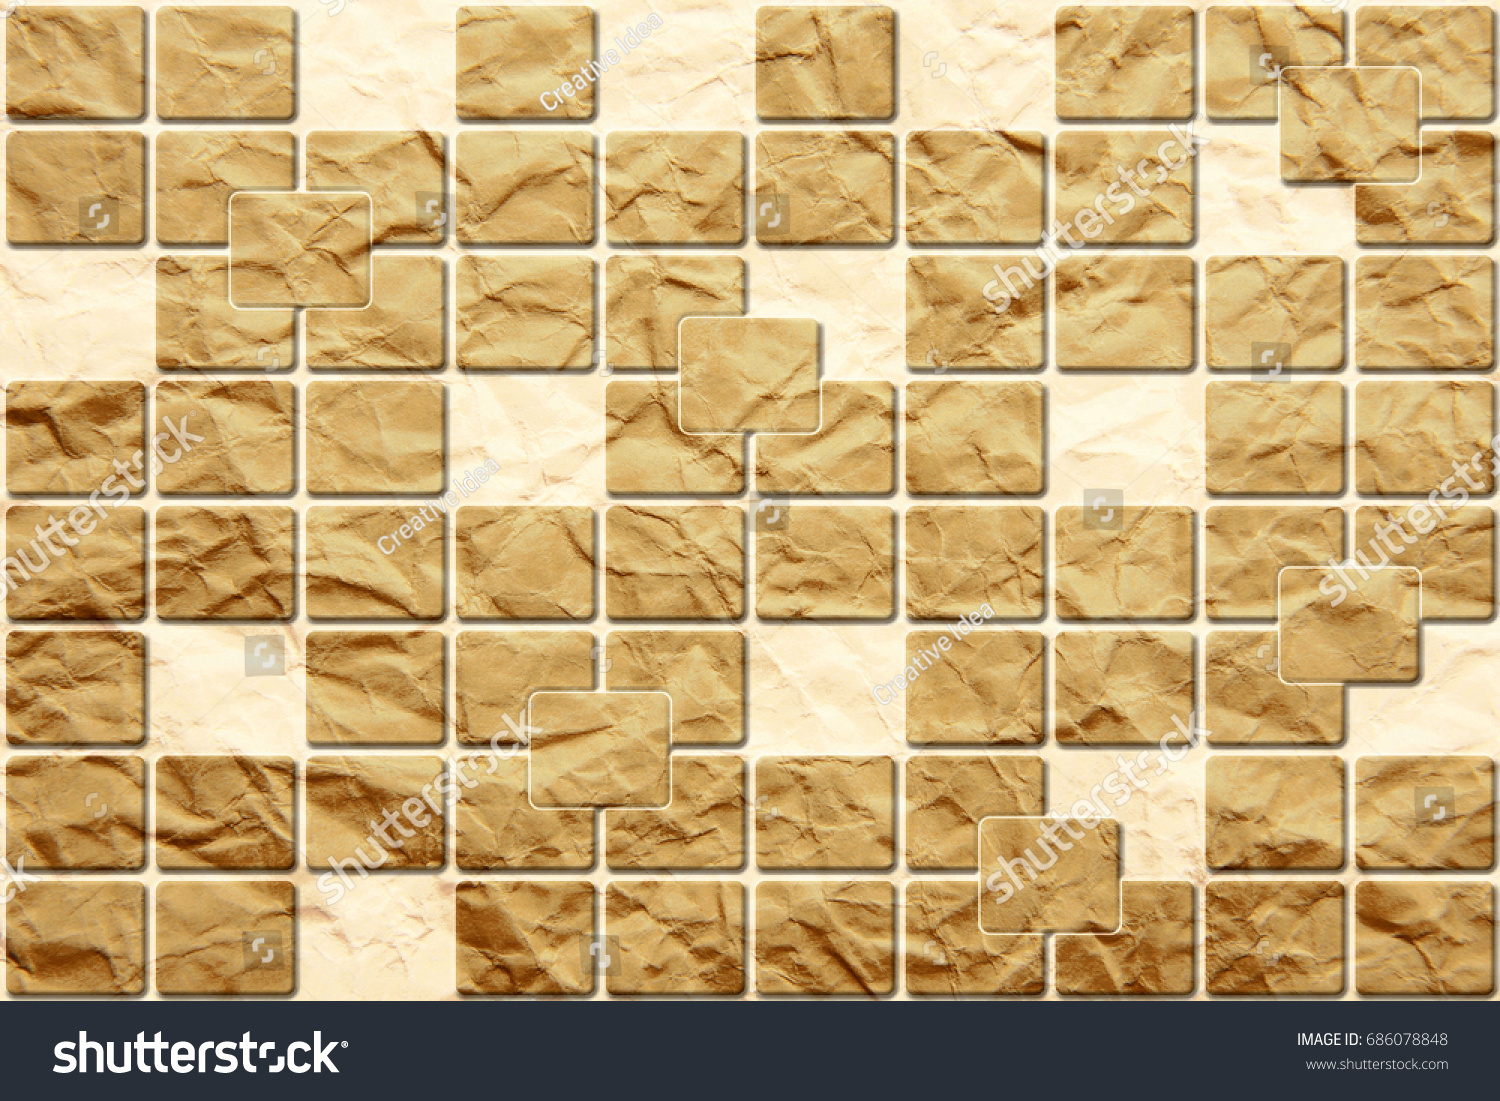 Nice Decorative Tiles For Wall Art Picture Collection - Wall Art ...